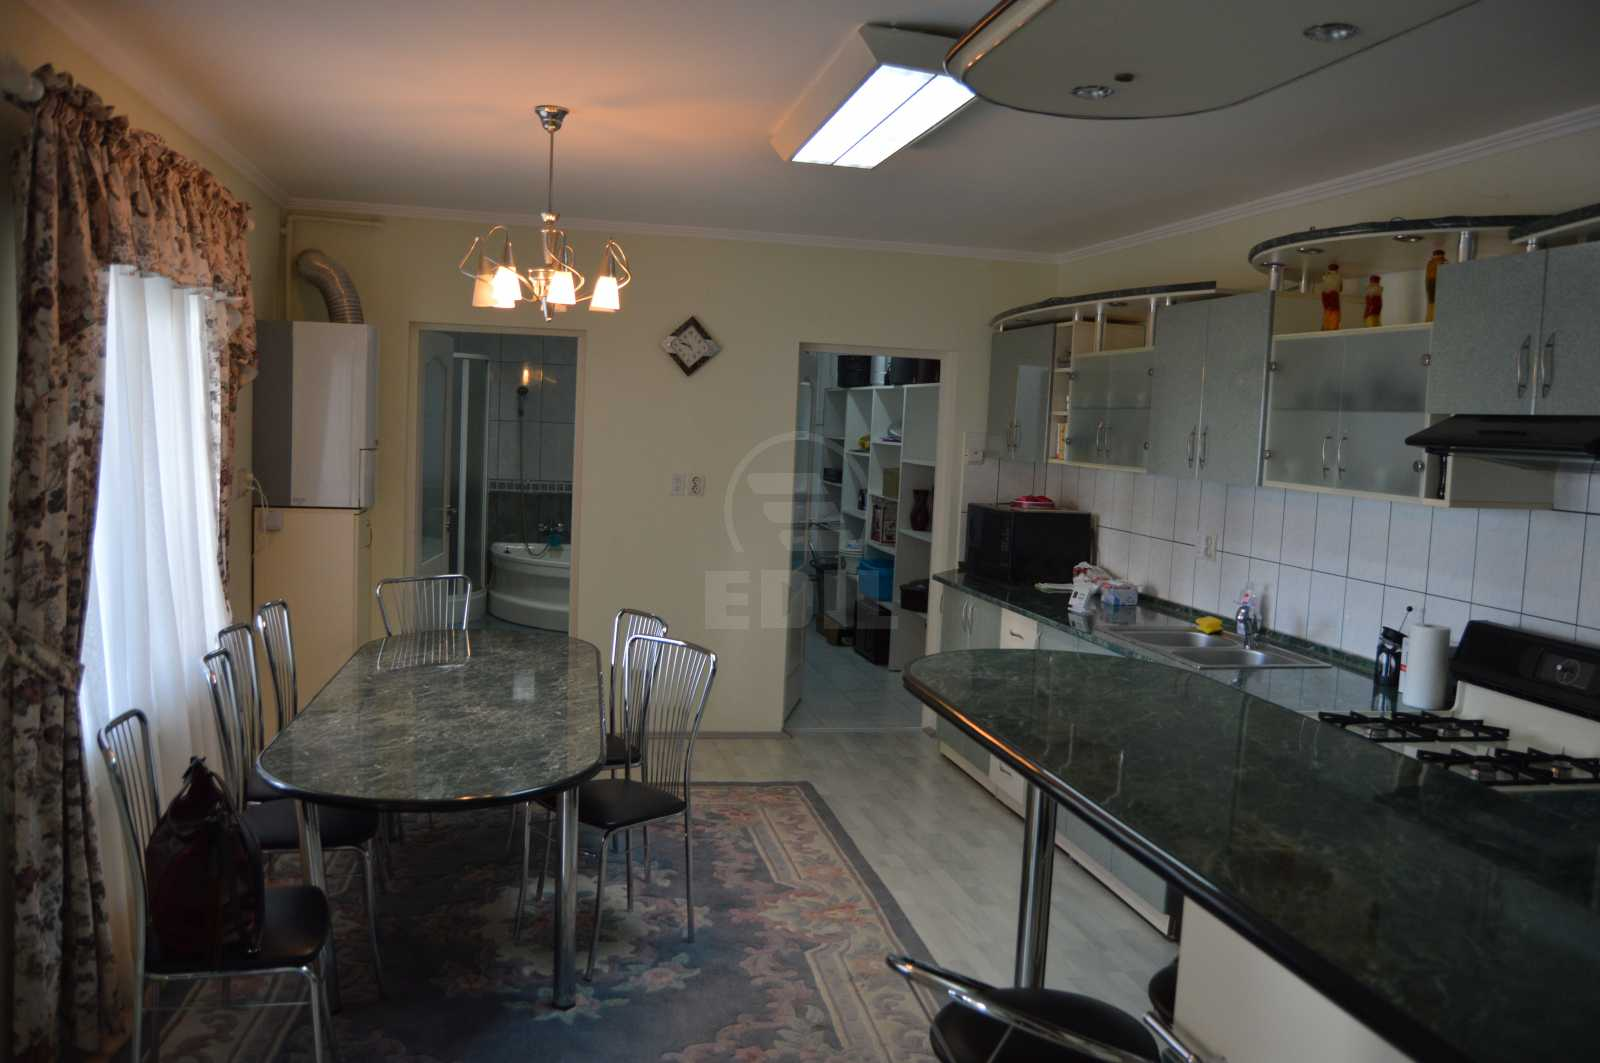 House for sale 3 rooms, CACJ284246-5